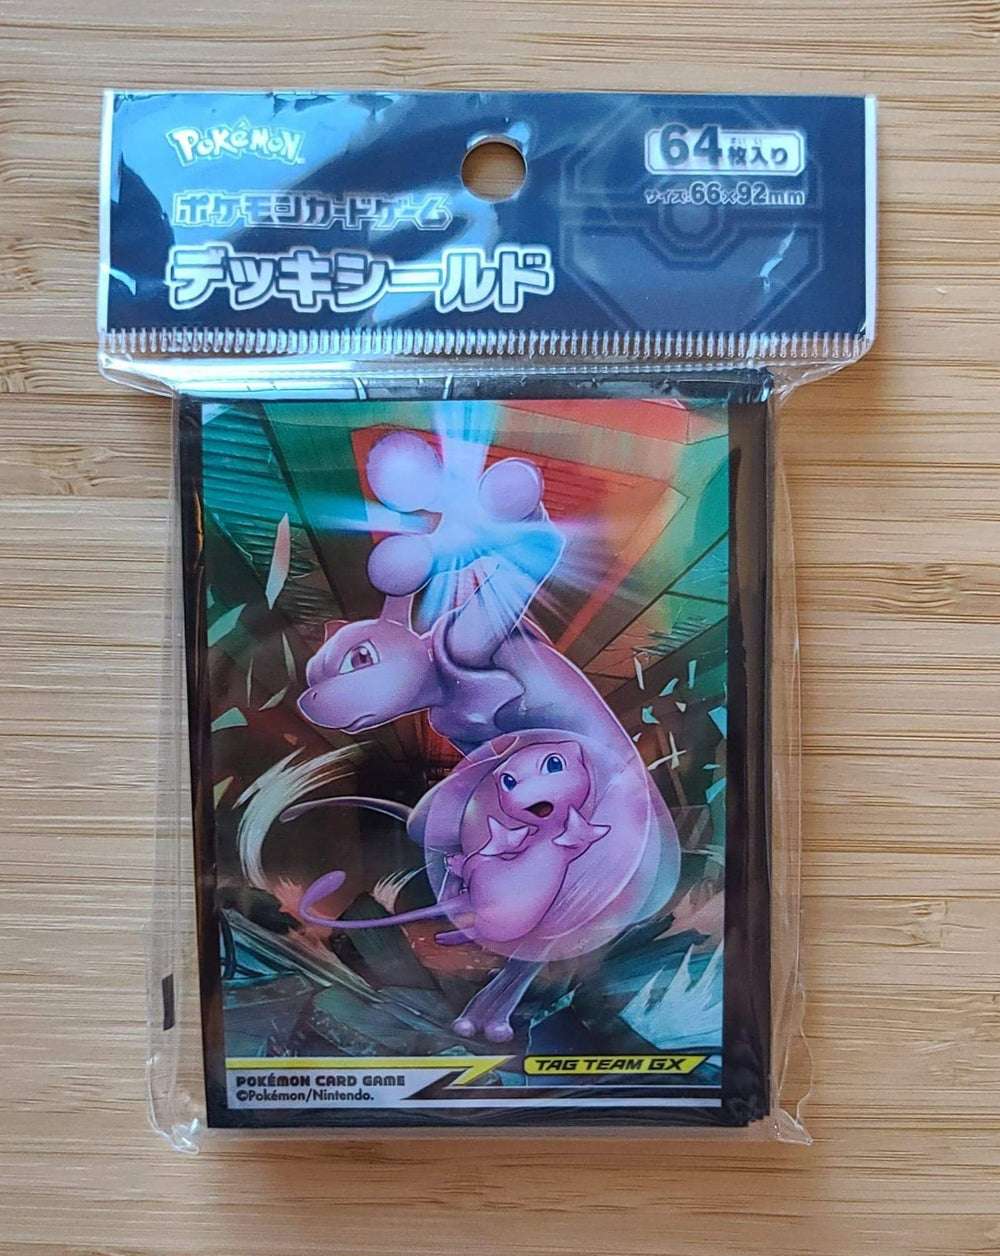 Pokémon Mew & Mewtwo Tag Team Gx Sleeves